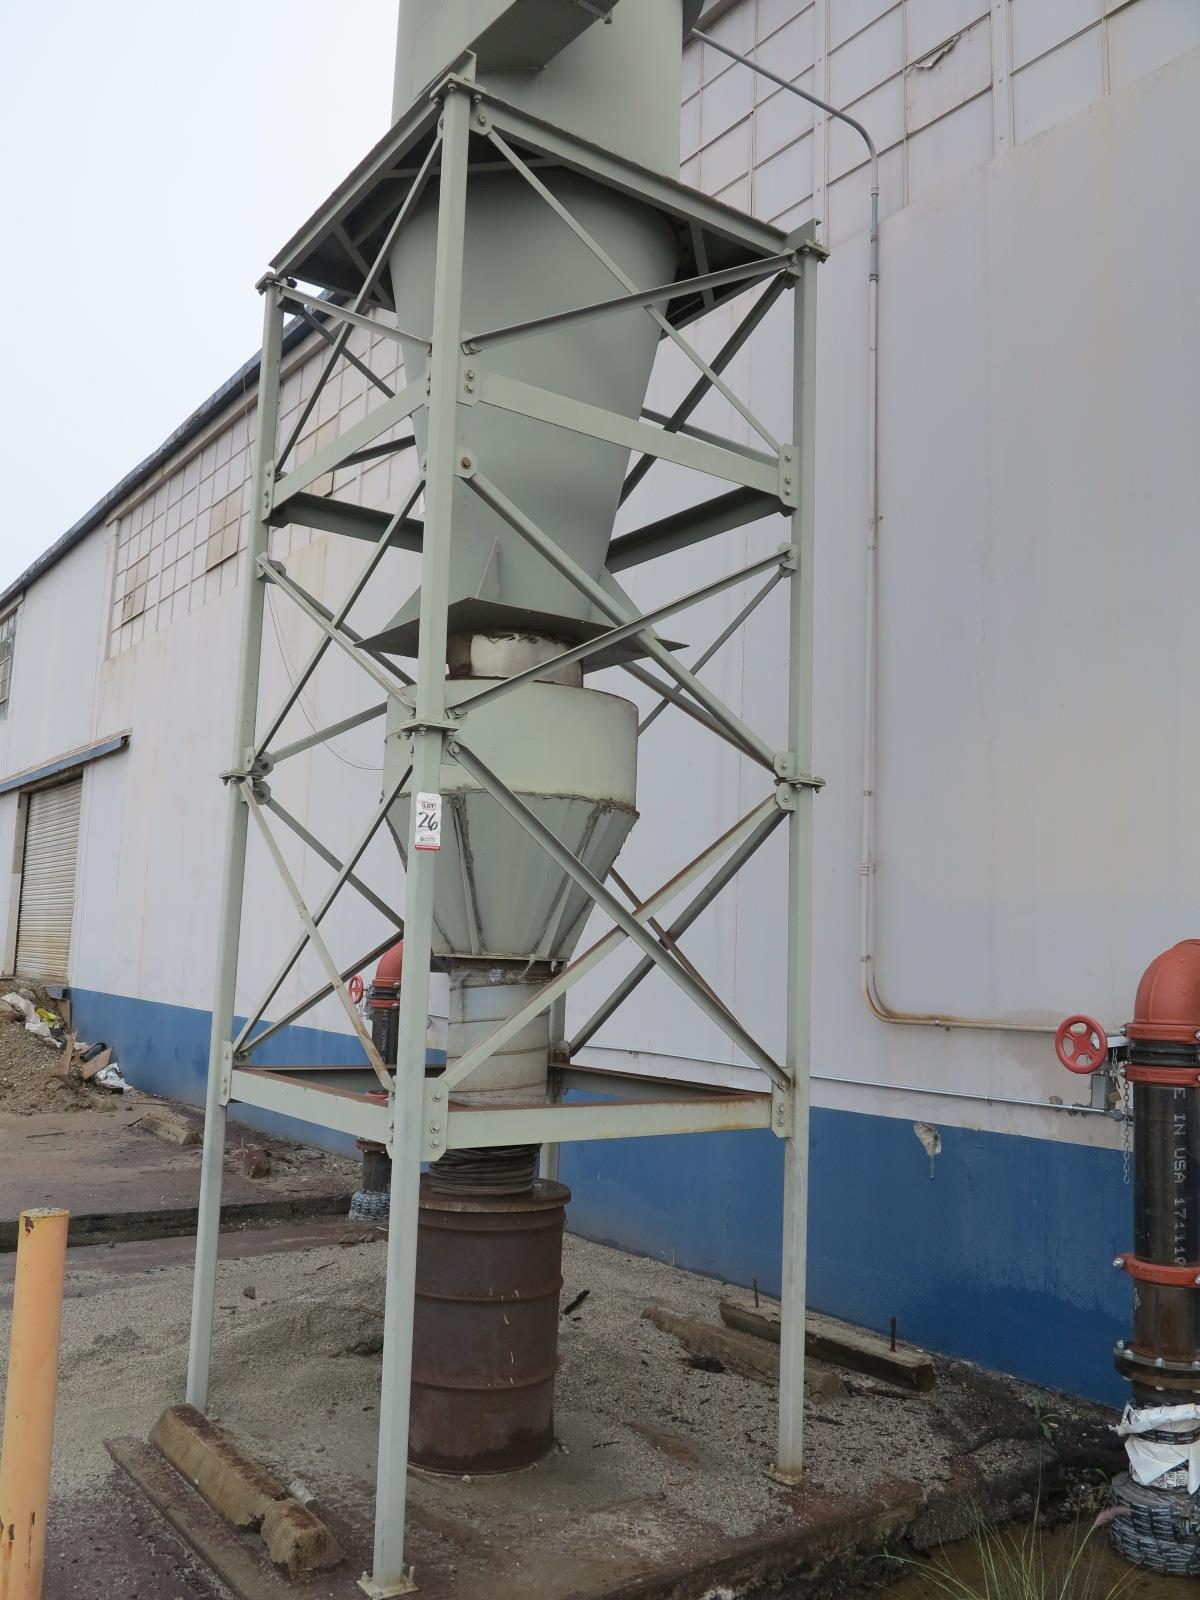 Lot 26 - UNITED AIR SPECIALISTS, INC. DUST HOG DUST COLLECTOR, MODEL C4450-1D, S/N 60020975